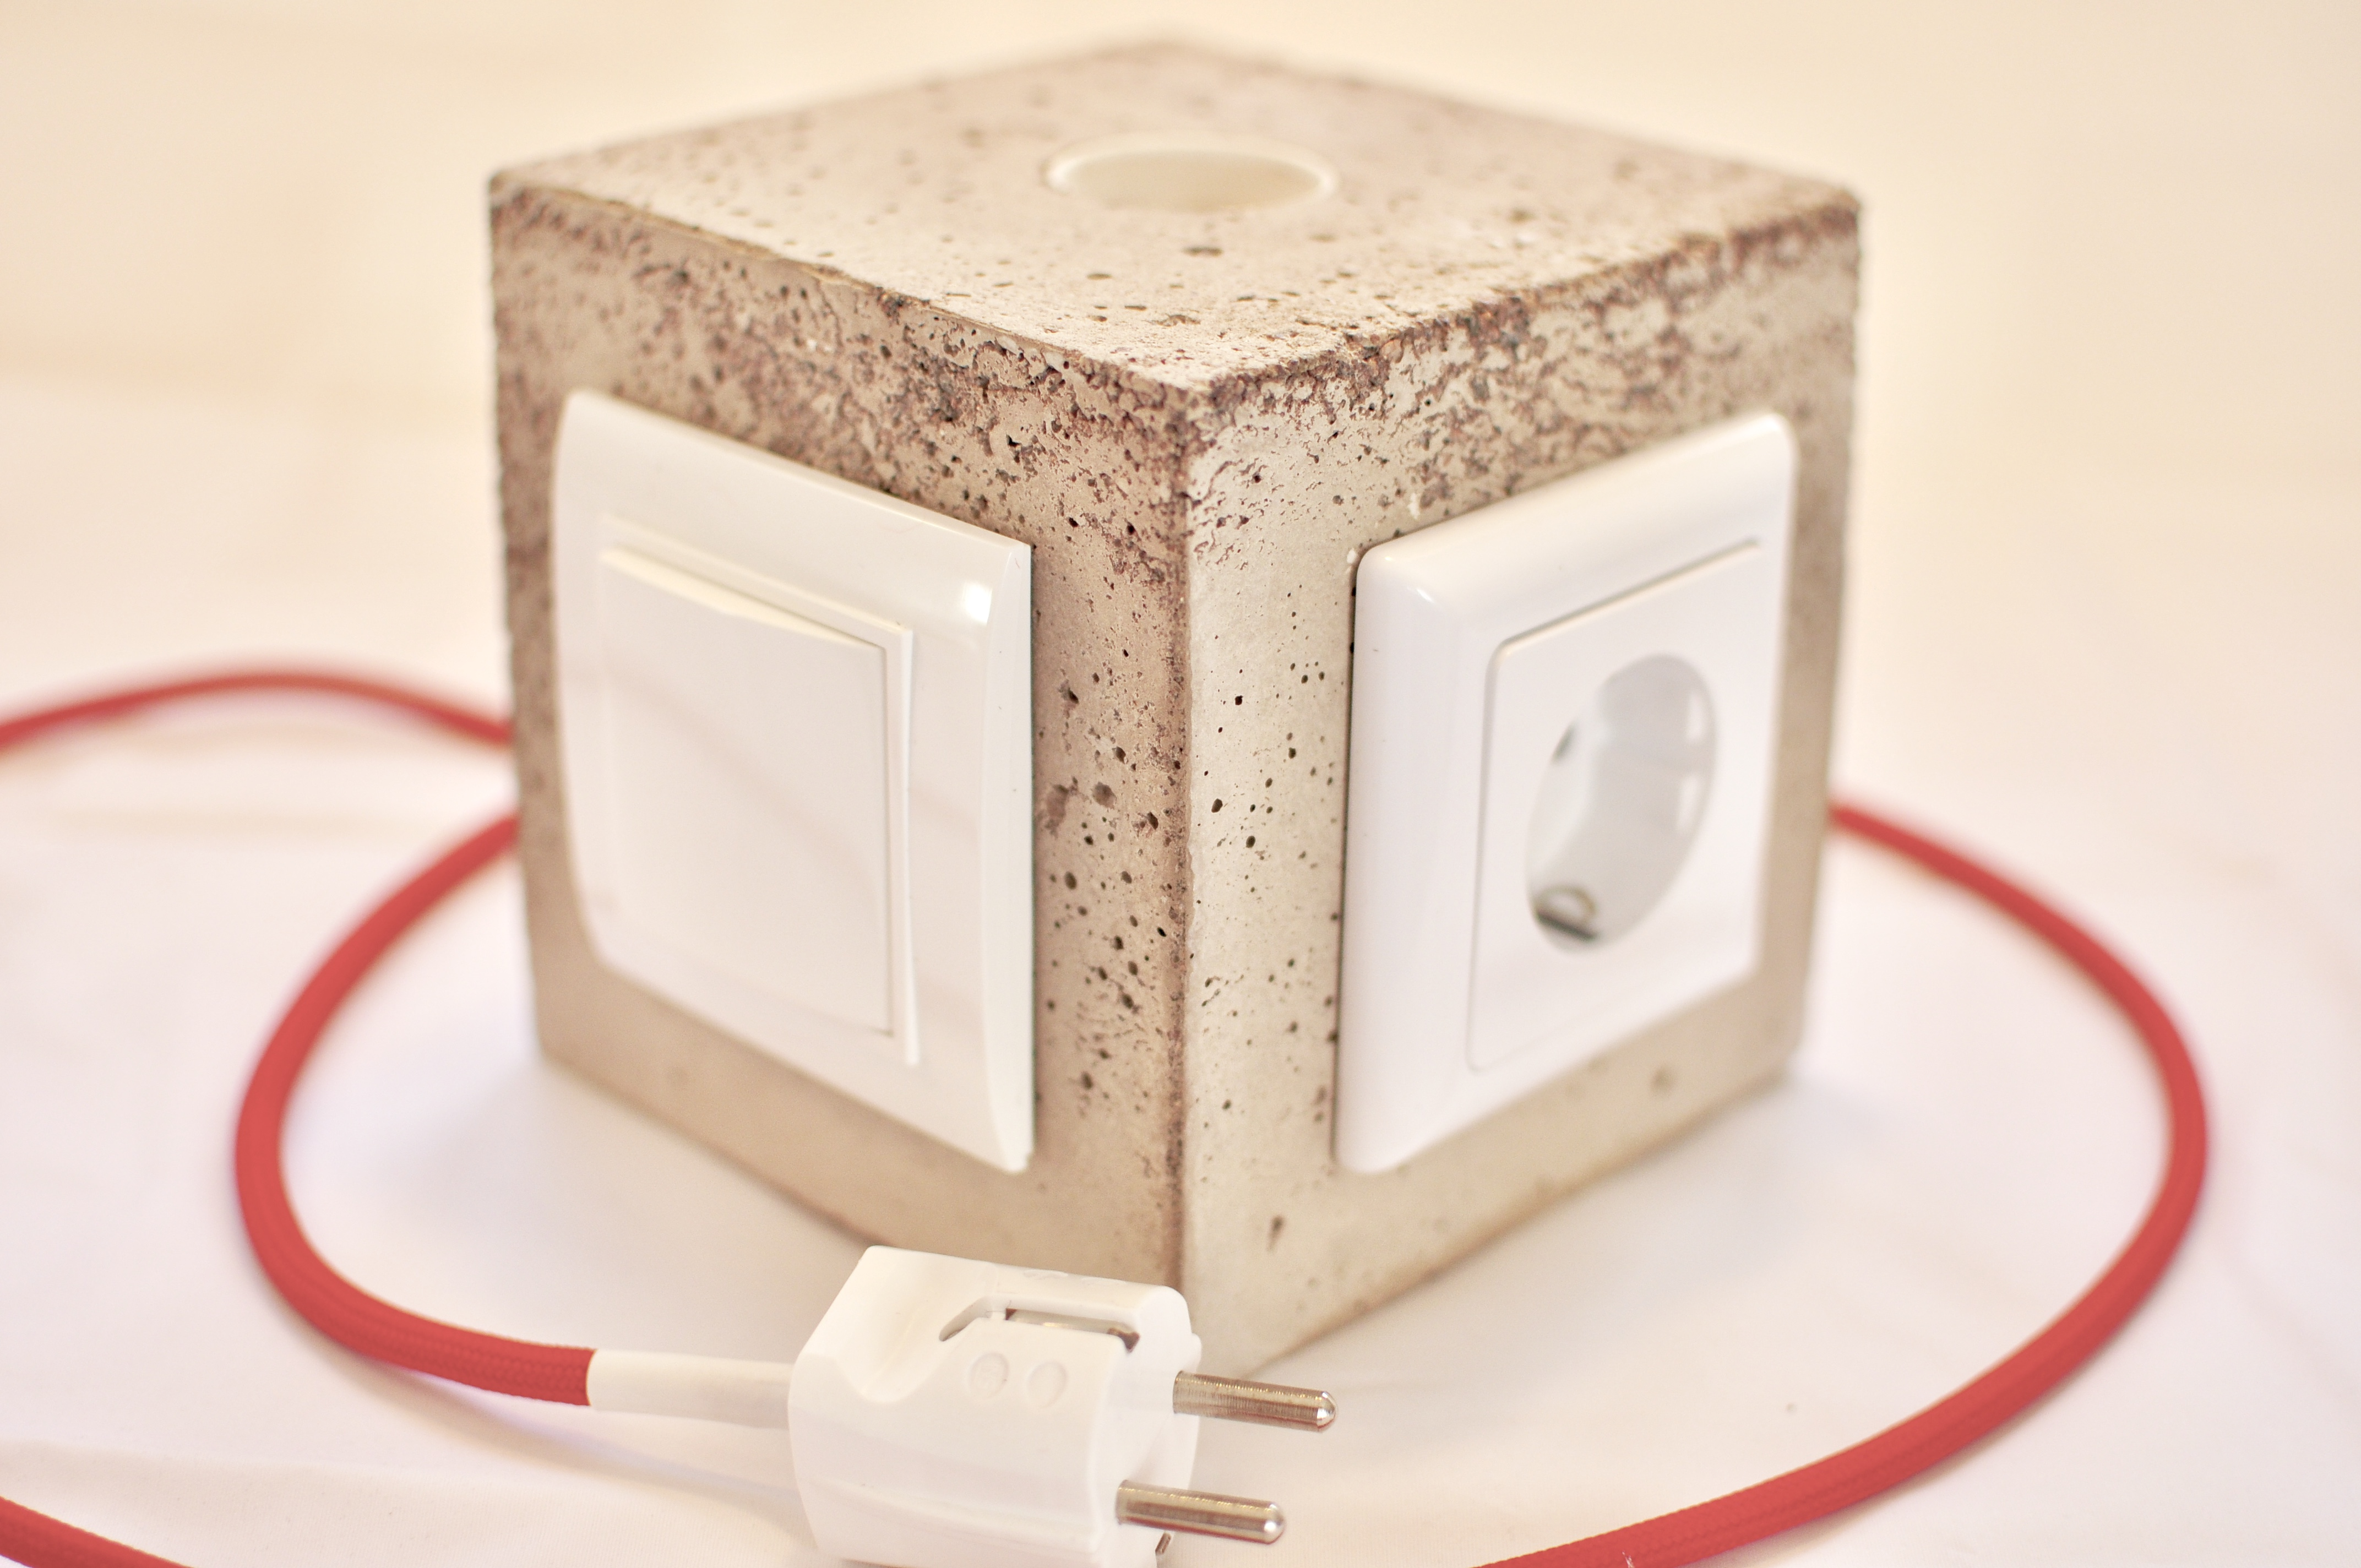 Diy Concrete Lamp With Switch And Power Outlet Kreuz Qwertz